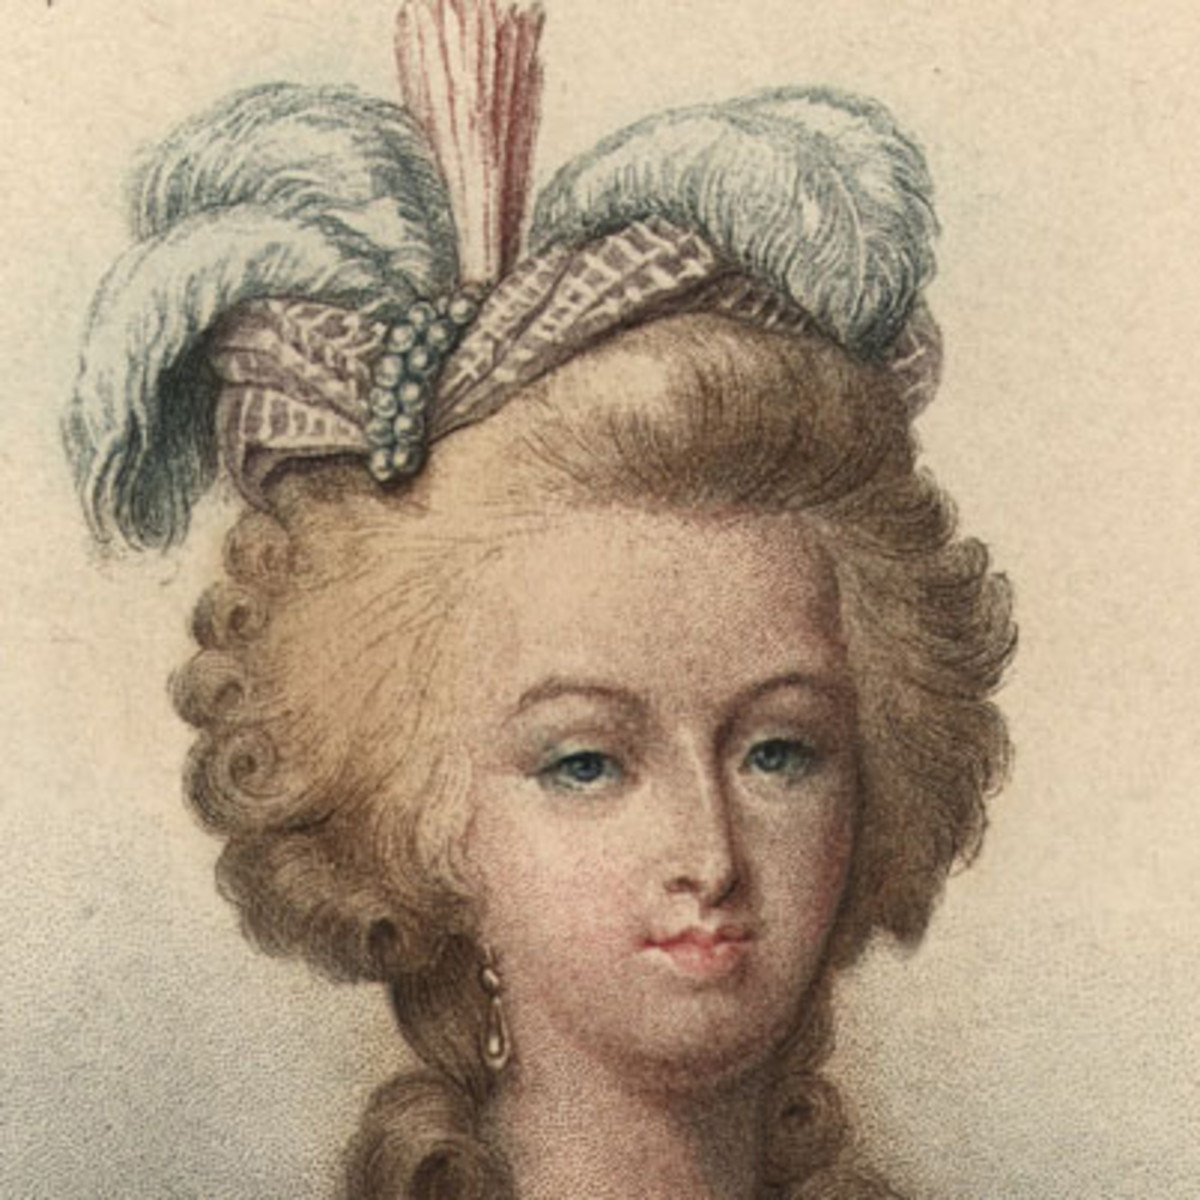 historical essay on the life of marie antoinette She is sure to provide a free flowing history that moves the the life of marie antoinette erickson initially discourses the birth of marie antoinette by her.